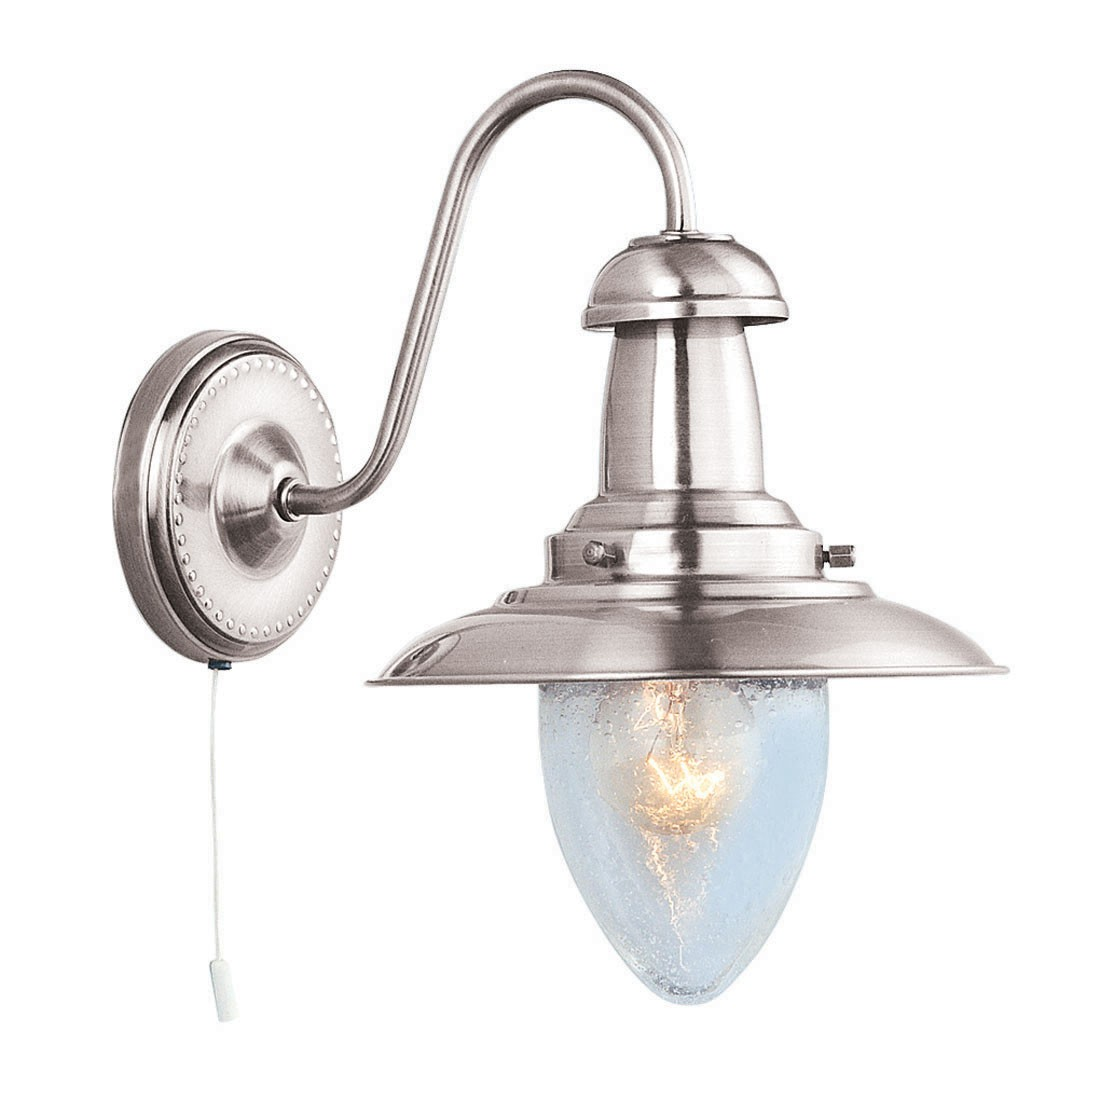 FISHERMAN SATIN SILVER CEILING LIGHT WITH CLEAR GLASS SHADE 4301ss Stanways Stoves and ...